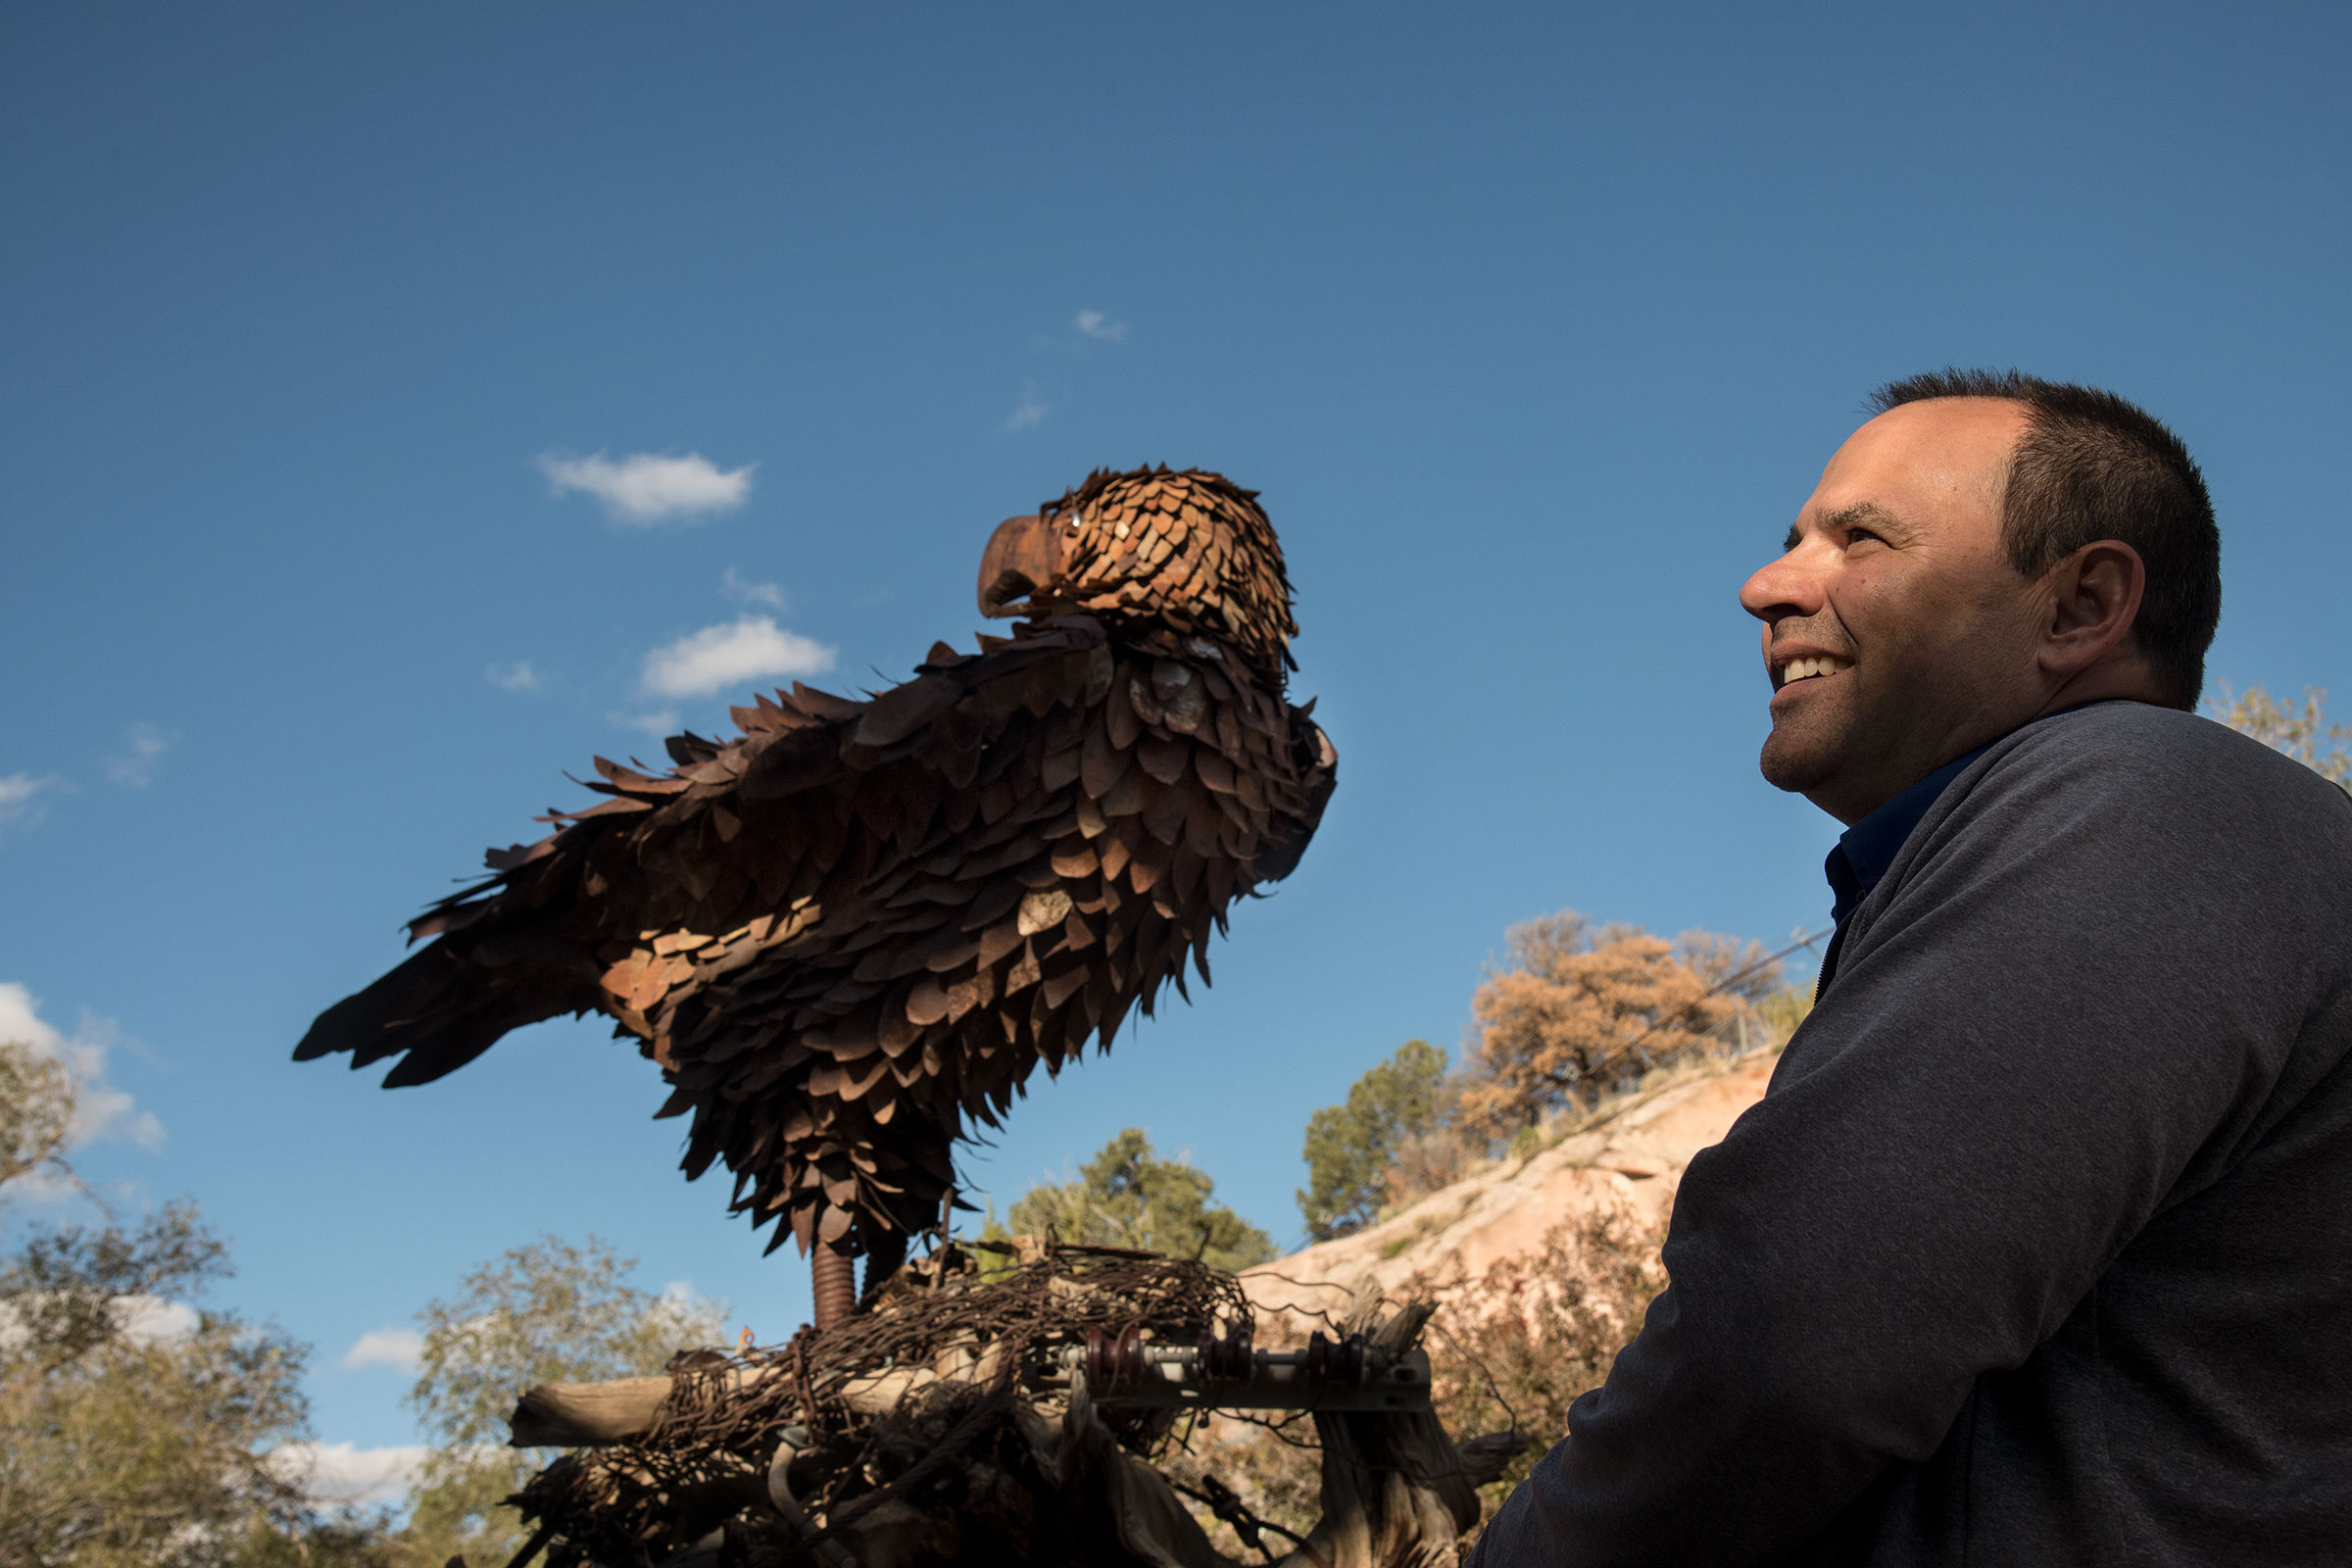 A Golden Eagle statue marks the entrance of the Navajo Nation aviary, managed by David Mikesic. Dawn Kish